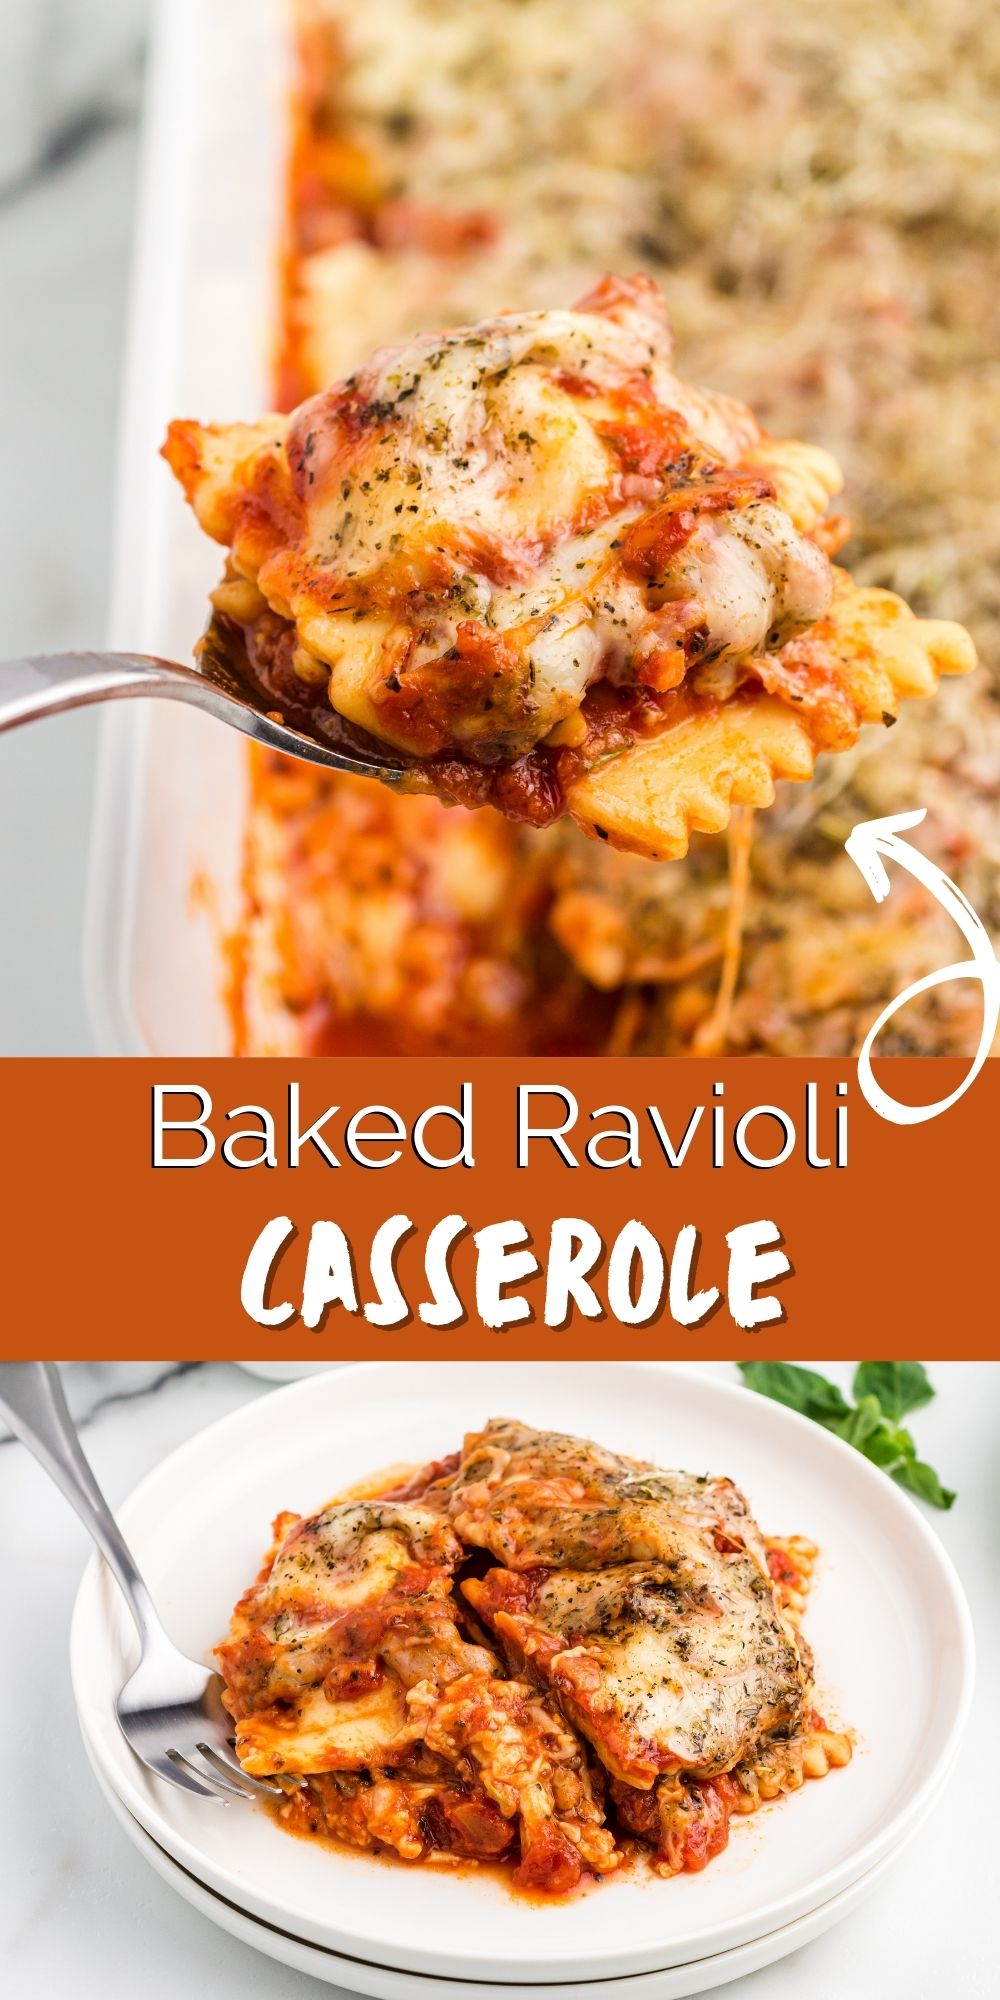 This Baked Ravioli Casserole recipe is just as great as lasagna, but much easier to make. Best yet? It can be made is about 30 minutes. via @familyfresh